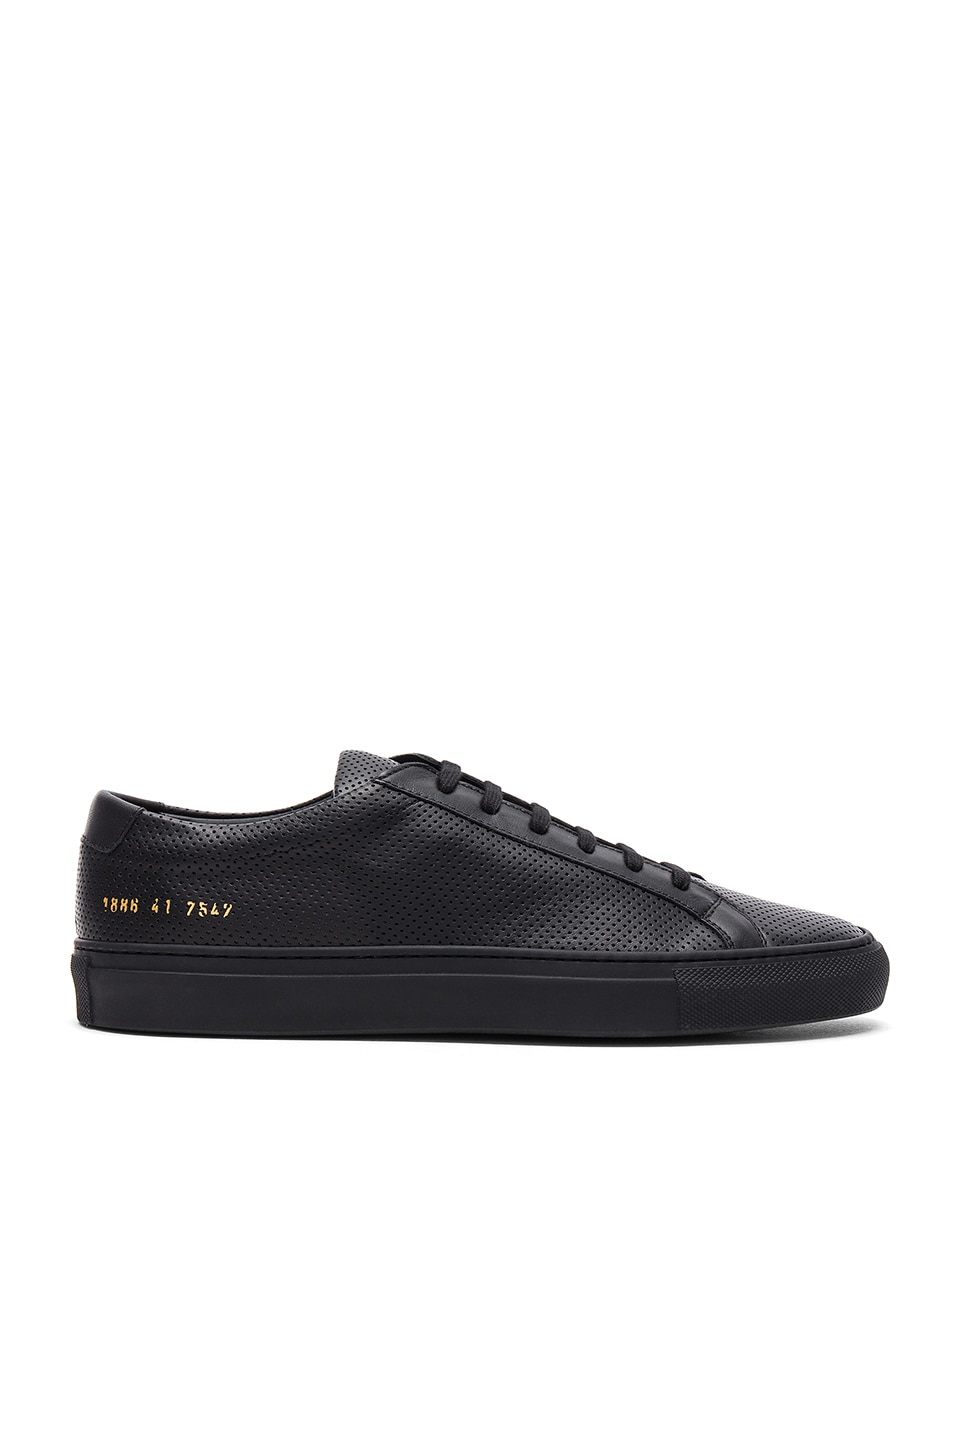 Achilles Perforated in Black by Common Projects